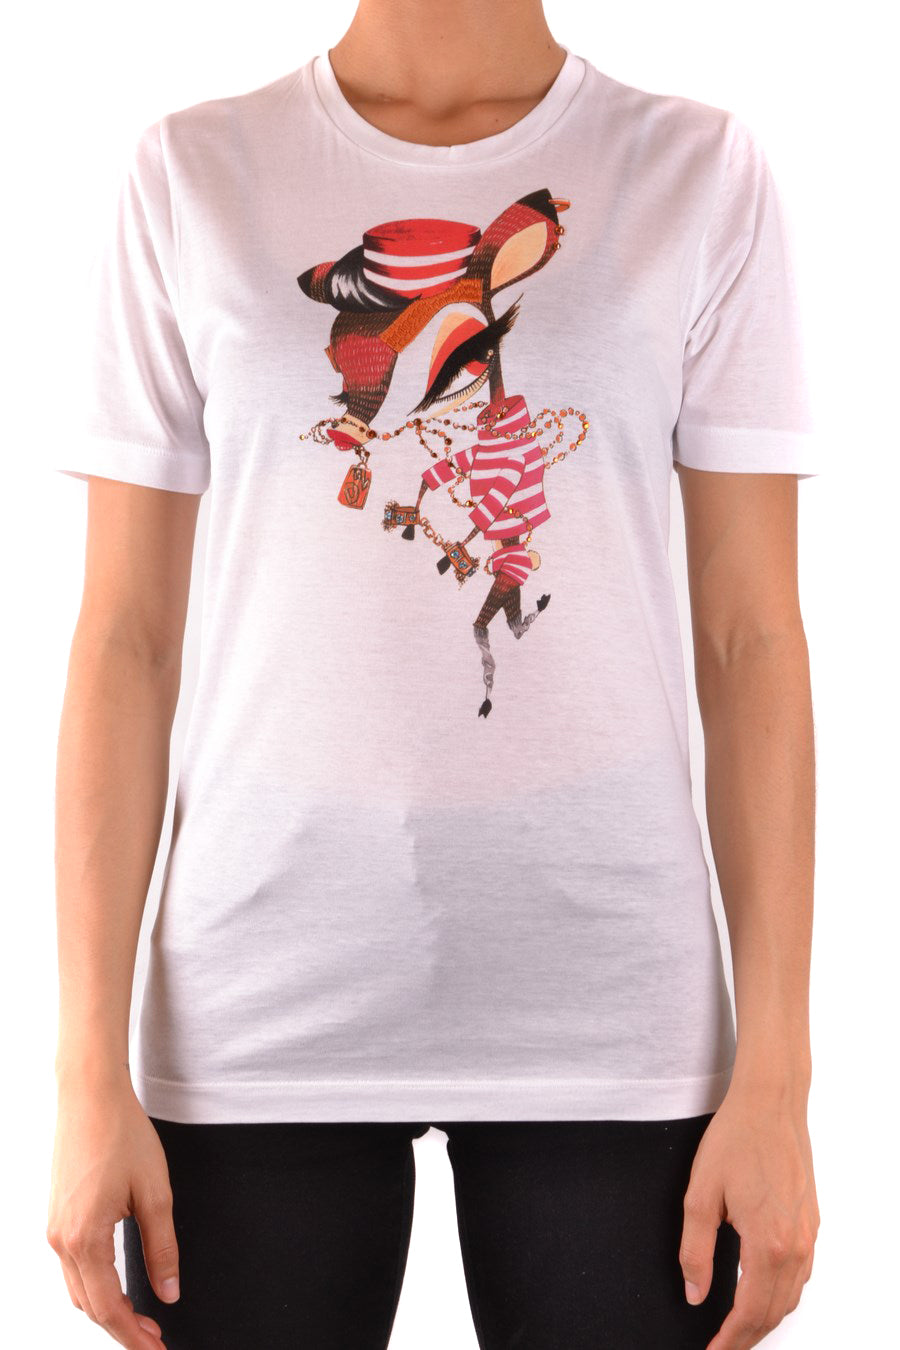 Tshirt Short Sleeves Dsquared-Tshirt Short Sleeves - WOMAN-Product Details Terms: New With LabelYear: 2018Main Color: WhiteGender: WomanMade In: ItalyManufacturer Part Number: S22362 S75Gc0682Size: IntSeason: Spring / SummerClothing Type: T-ShirtComposition: Cotton 100%-Keyomi-Sook